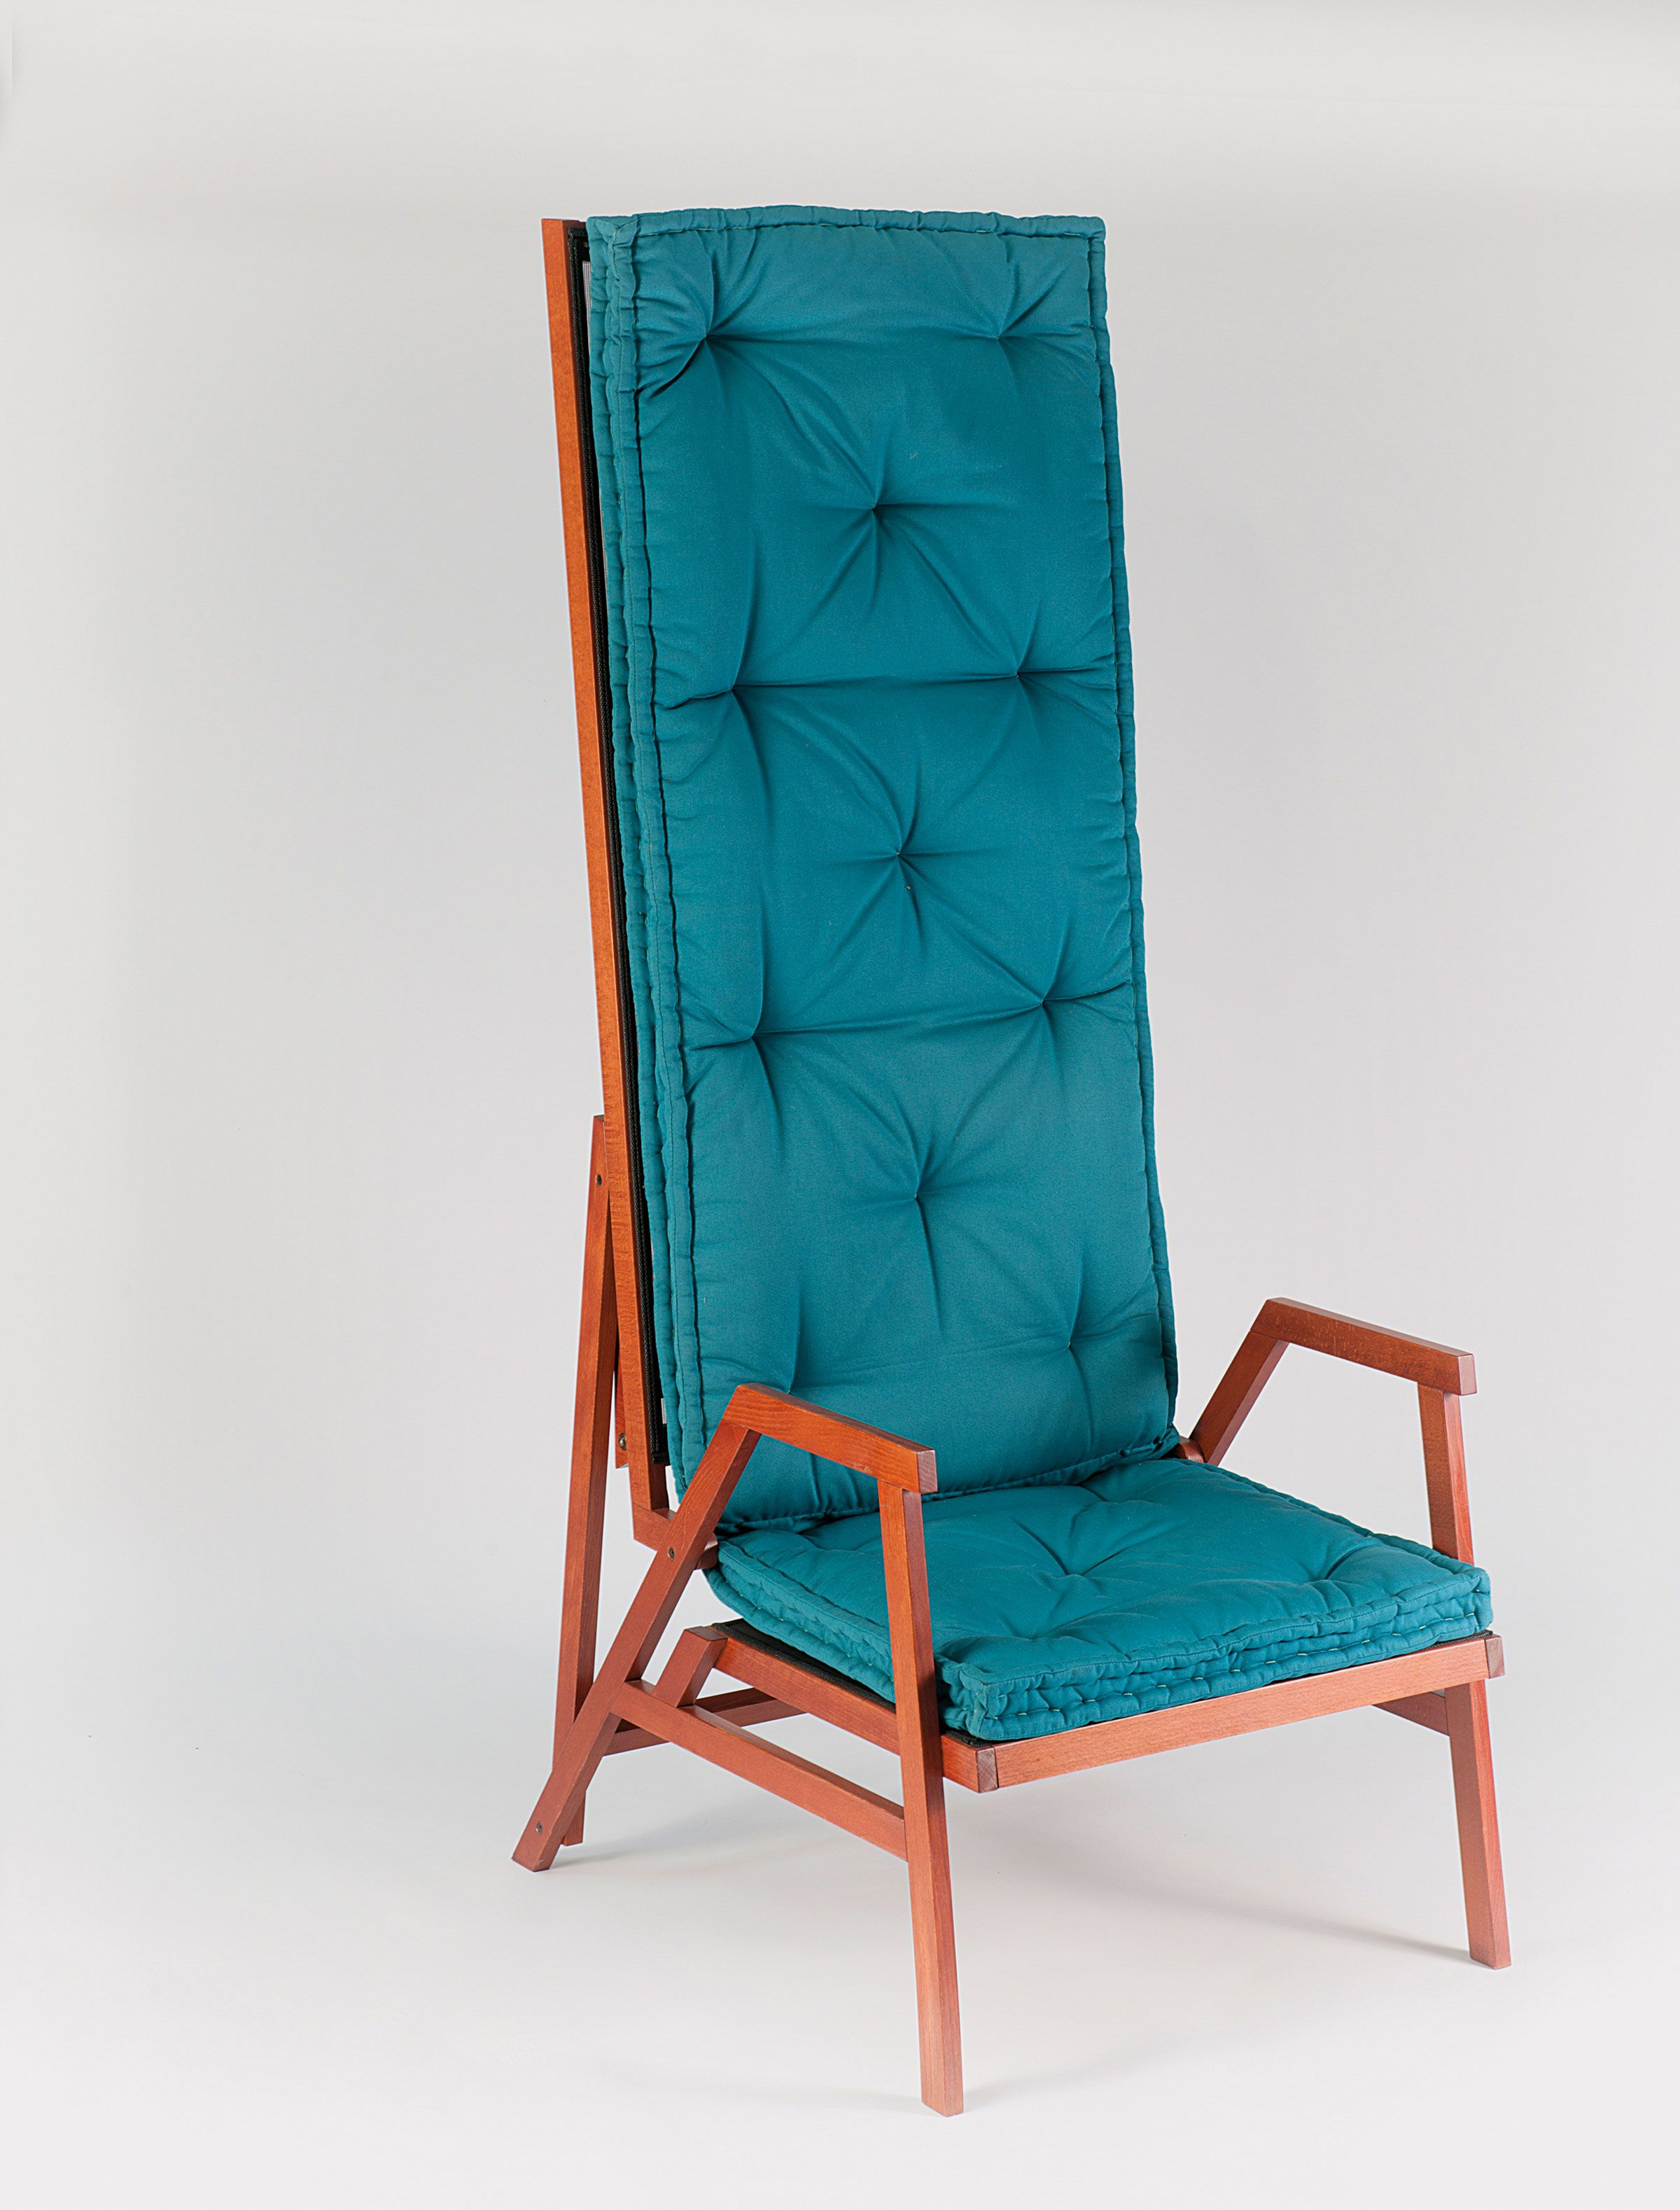 folding chair auction with canopy target lot 104a218 39polet 39 lawn 1992 castiglioni